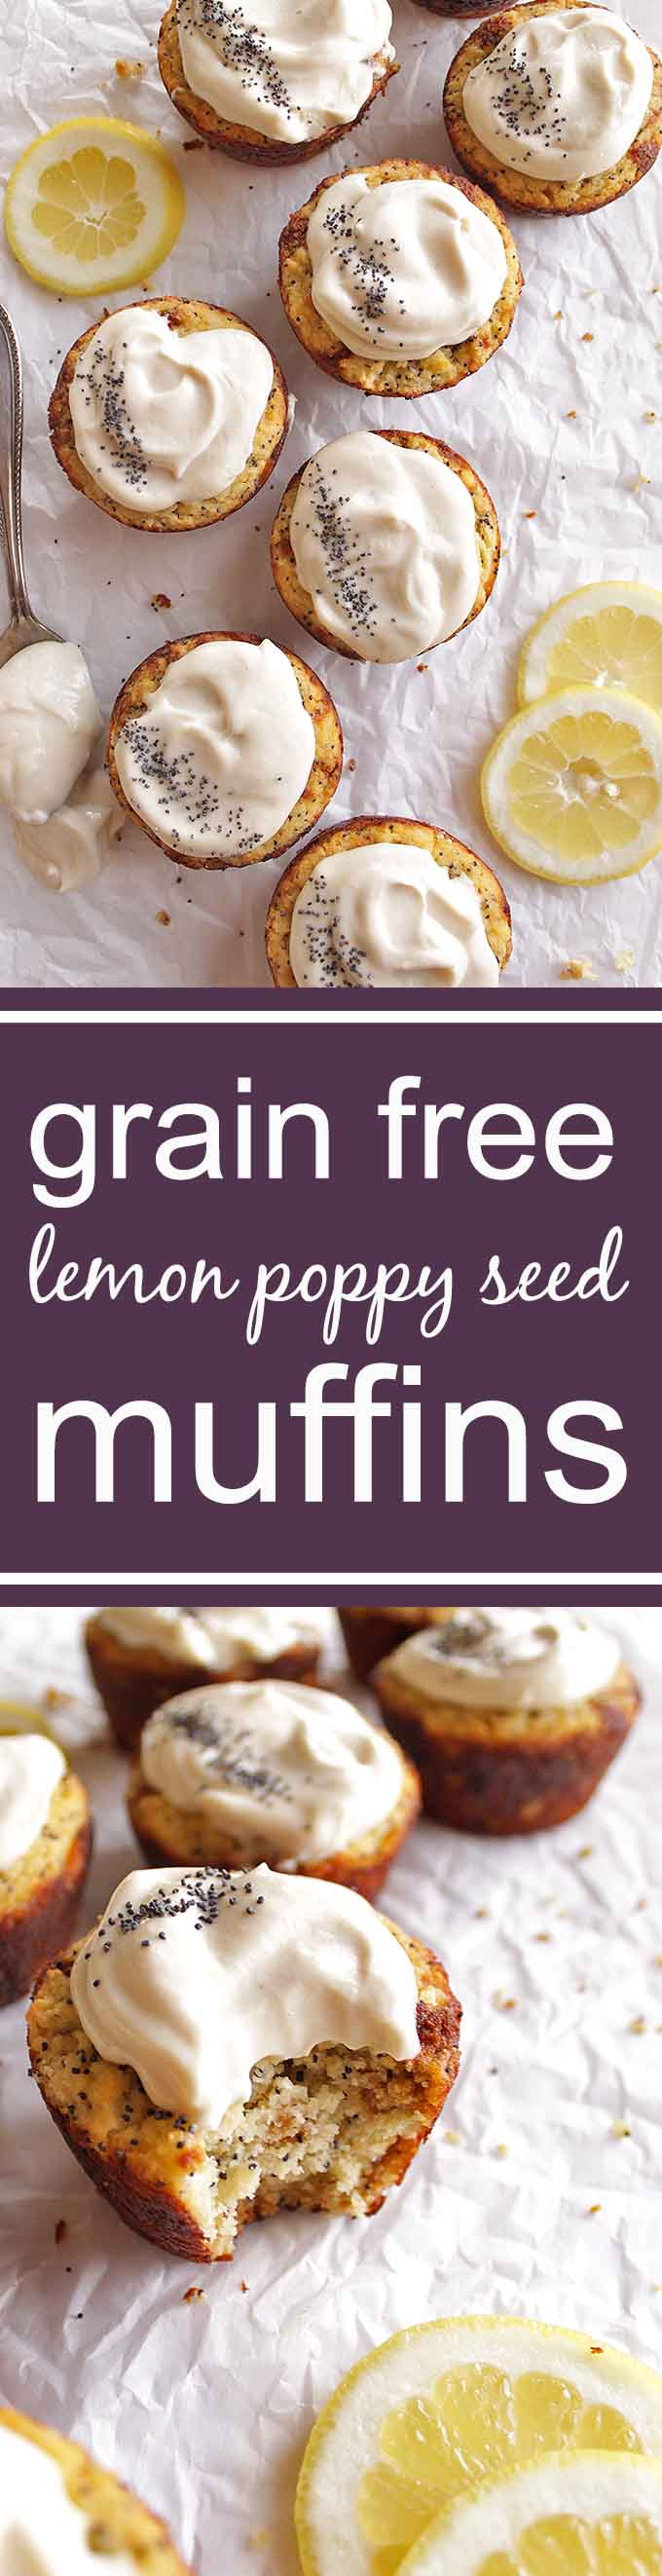 Grain Free Lemon Poppy Seed Muffins - Fluffy, lemon-y muffins topped with a tangy cashew glaze. This recipe is perfect for parties, brunch, or breakfast. These are some of our fave muffins! Gluten Free/Dairy Free/ Grain Free/ Refined Sugar Free | robustrecipes.com